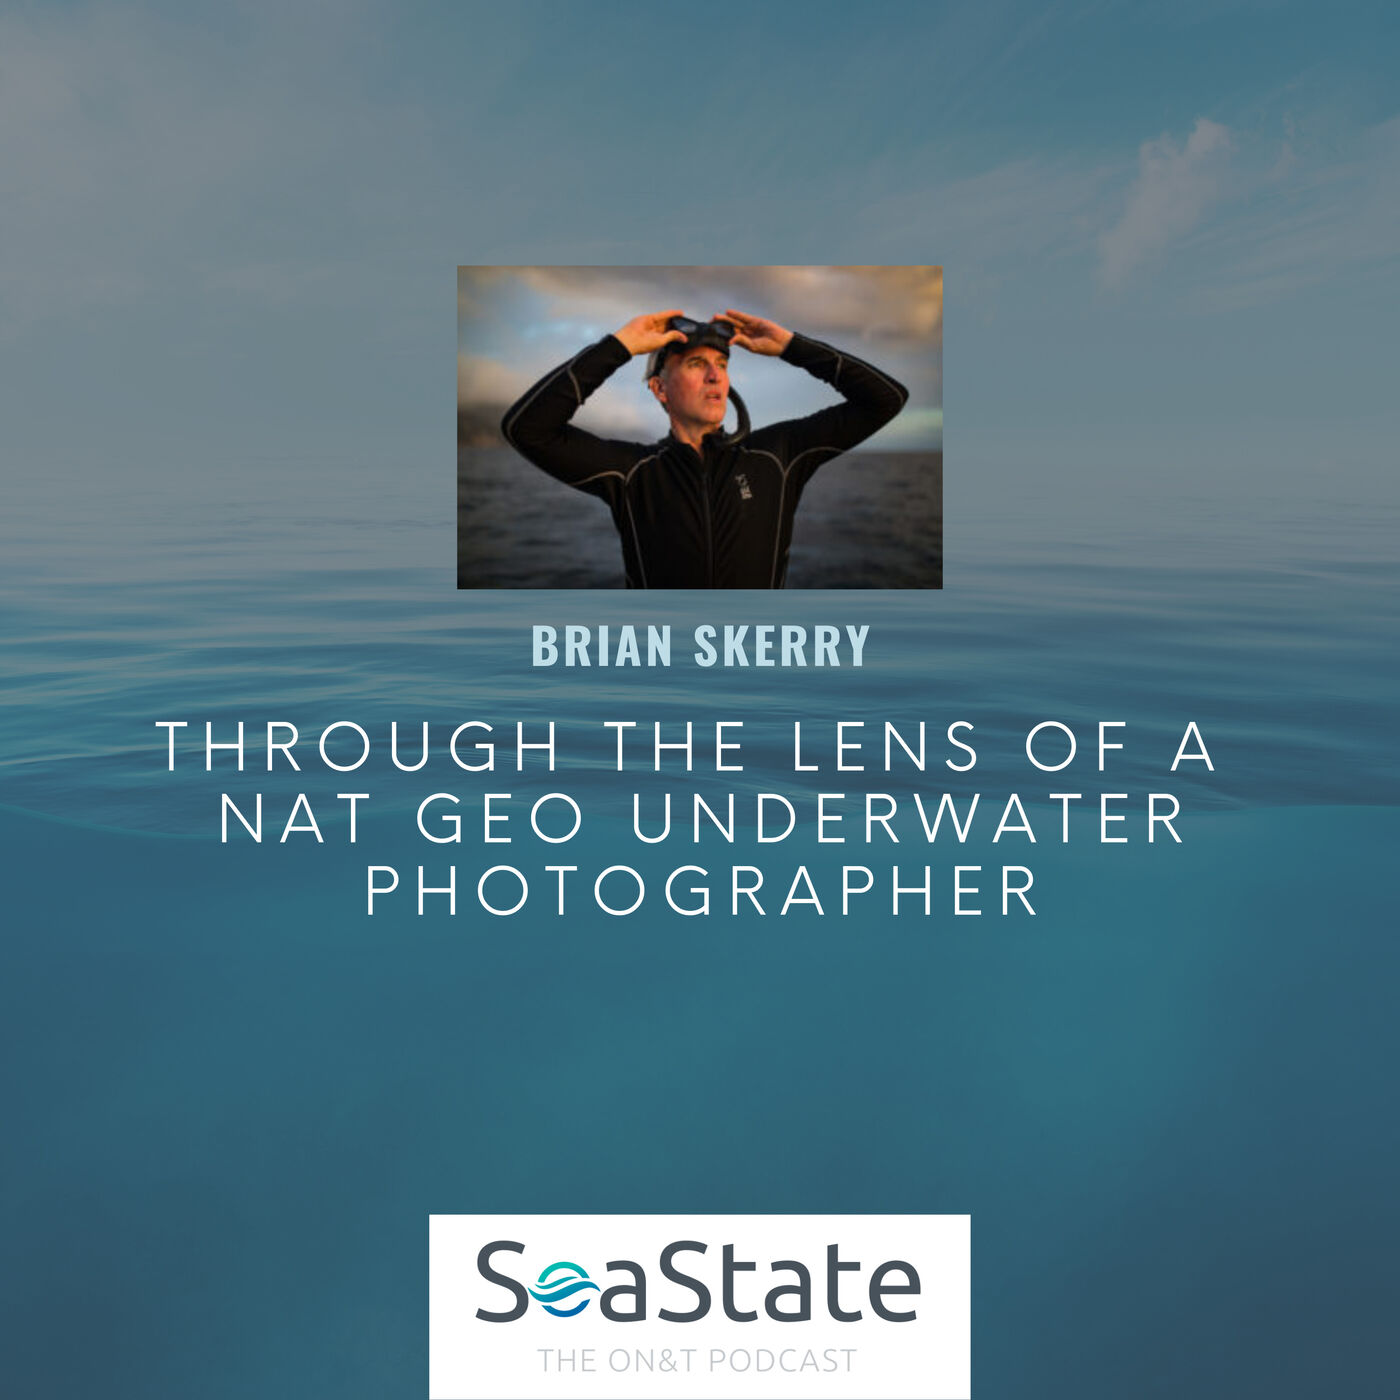 Brian Skerry: Through the Lens of a Nat Geo Underwater Photographer